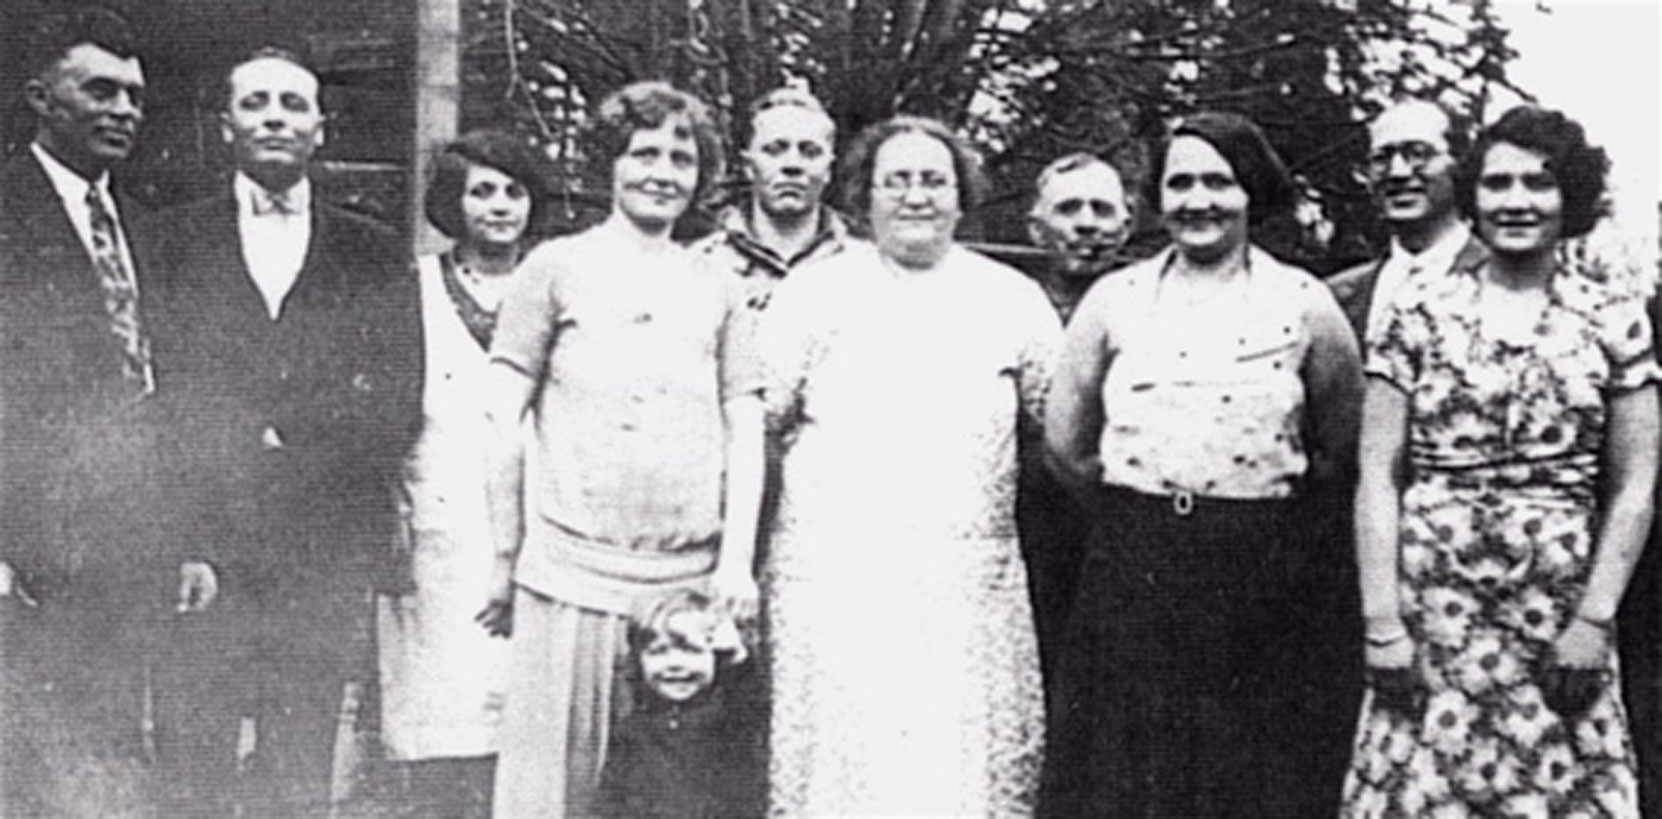 Left to right: Gus Bergman, Henry Smith Pearl Smith, Josie Creighton (Murray), Freddy Smith Wilhomena (Ma), Thomas (Pa), Laura Bergmans (Smith), Bart Creighton, Carrie Smith circa 1929 (photo: http://smithfamhis.blogspot.com )